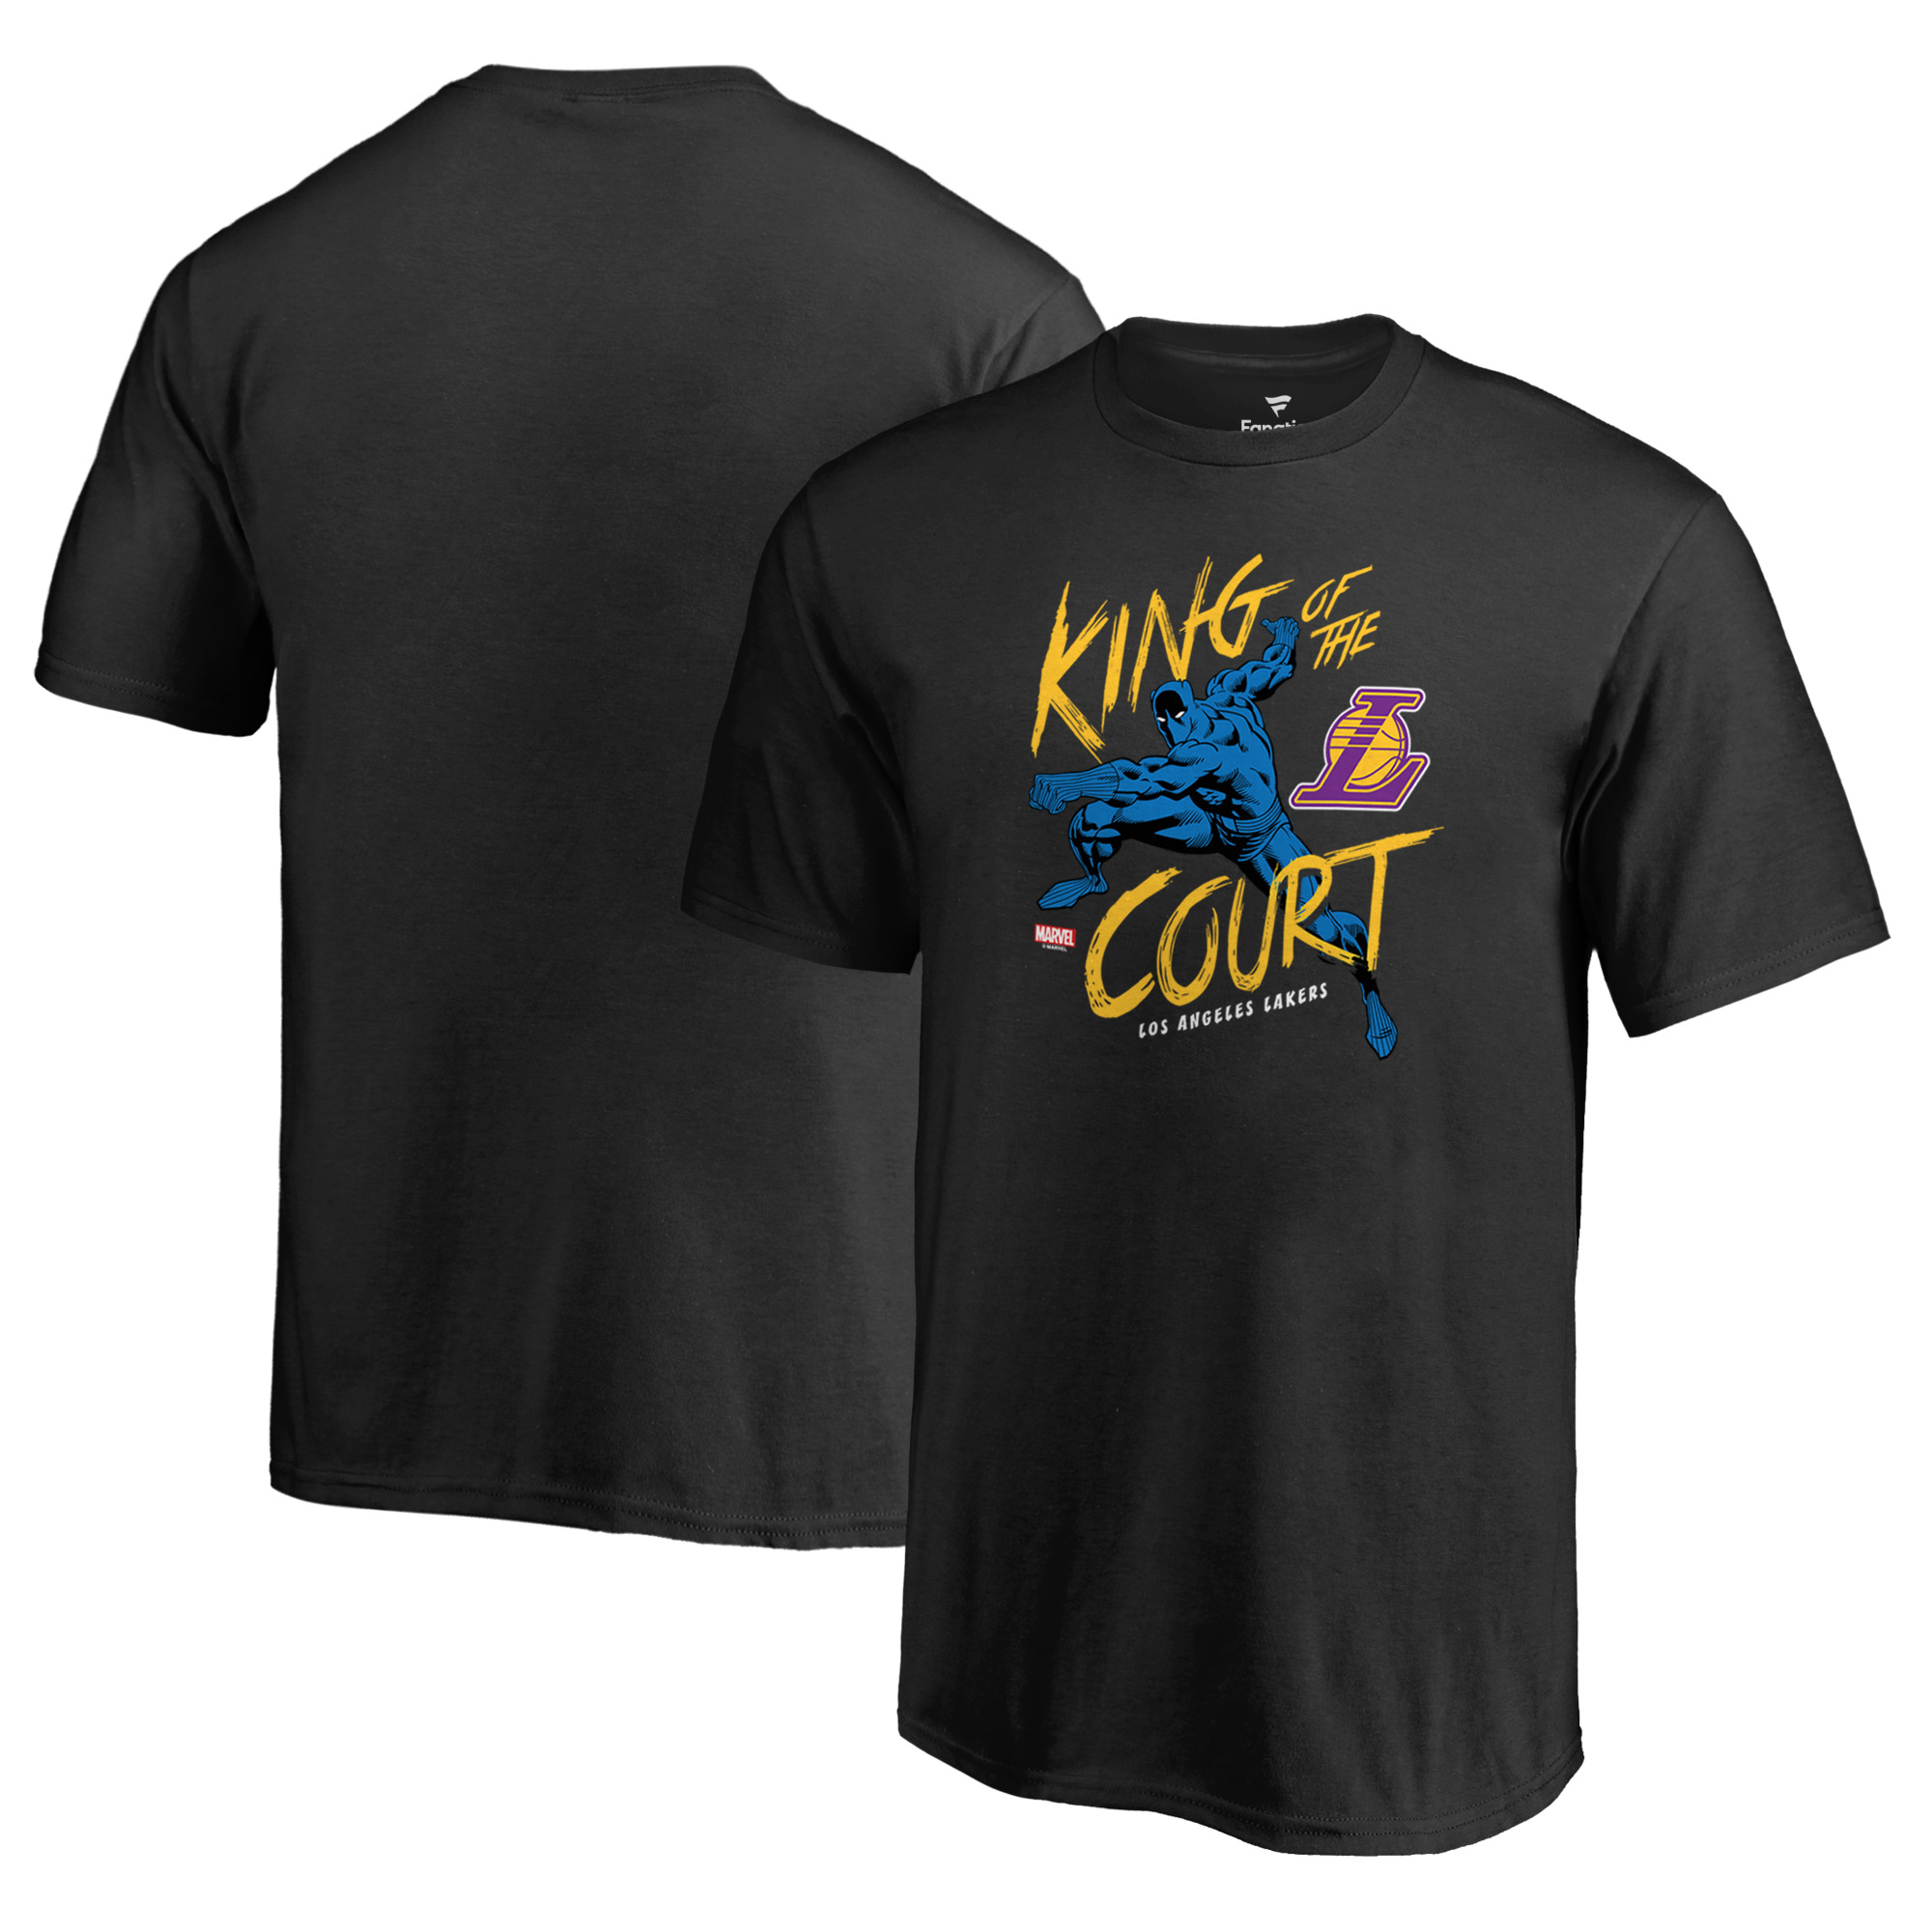 Los Angeles Lakers Fanatics Branded Youth Marvel Black Panther King of the Court T-Shirt - Black